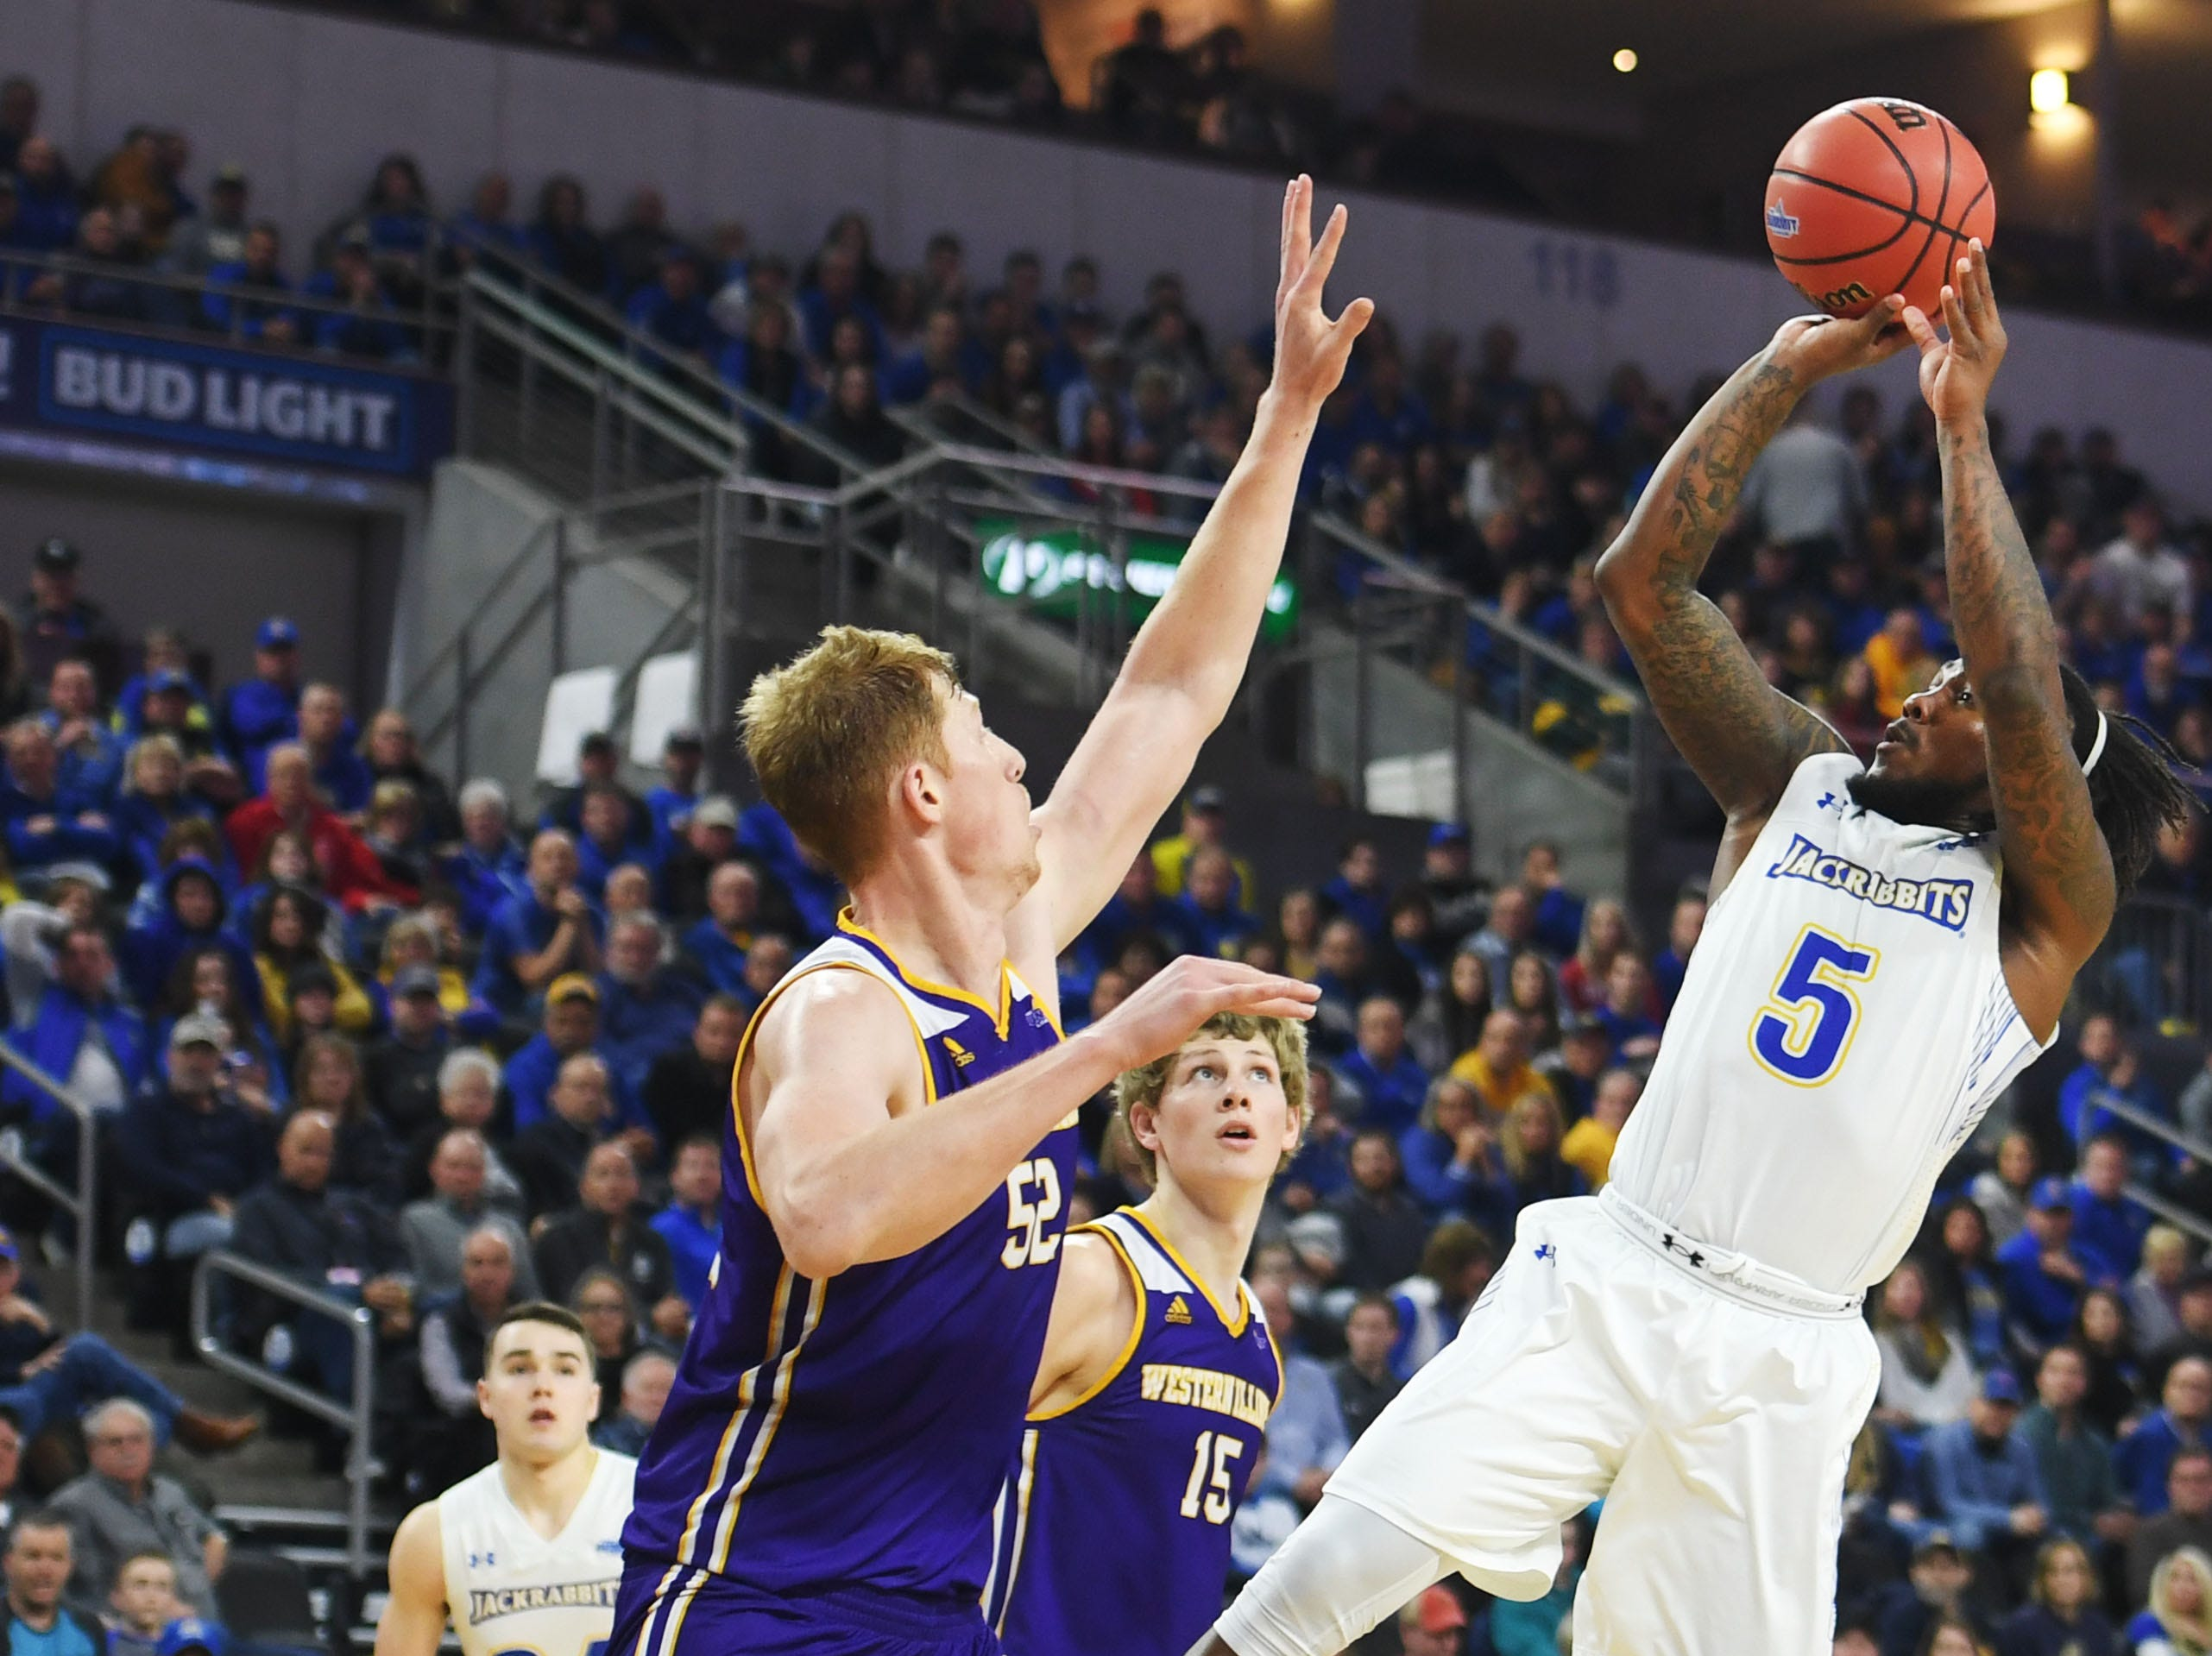 SDSU's David Jenkins attempts to score against Western Illinois' Brandon Gilbeck during the game Saturday, March 9, in the Summit League tournament at the Denny Sanford Premier Center in Sioux Falls.